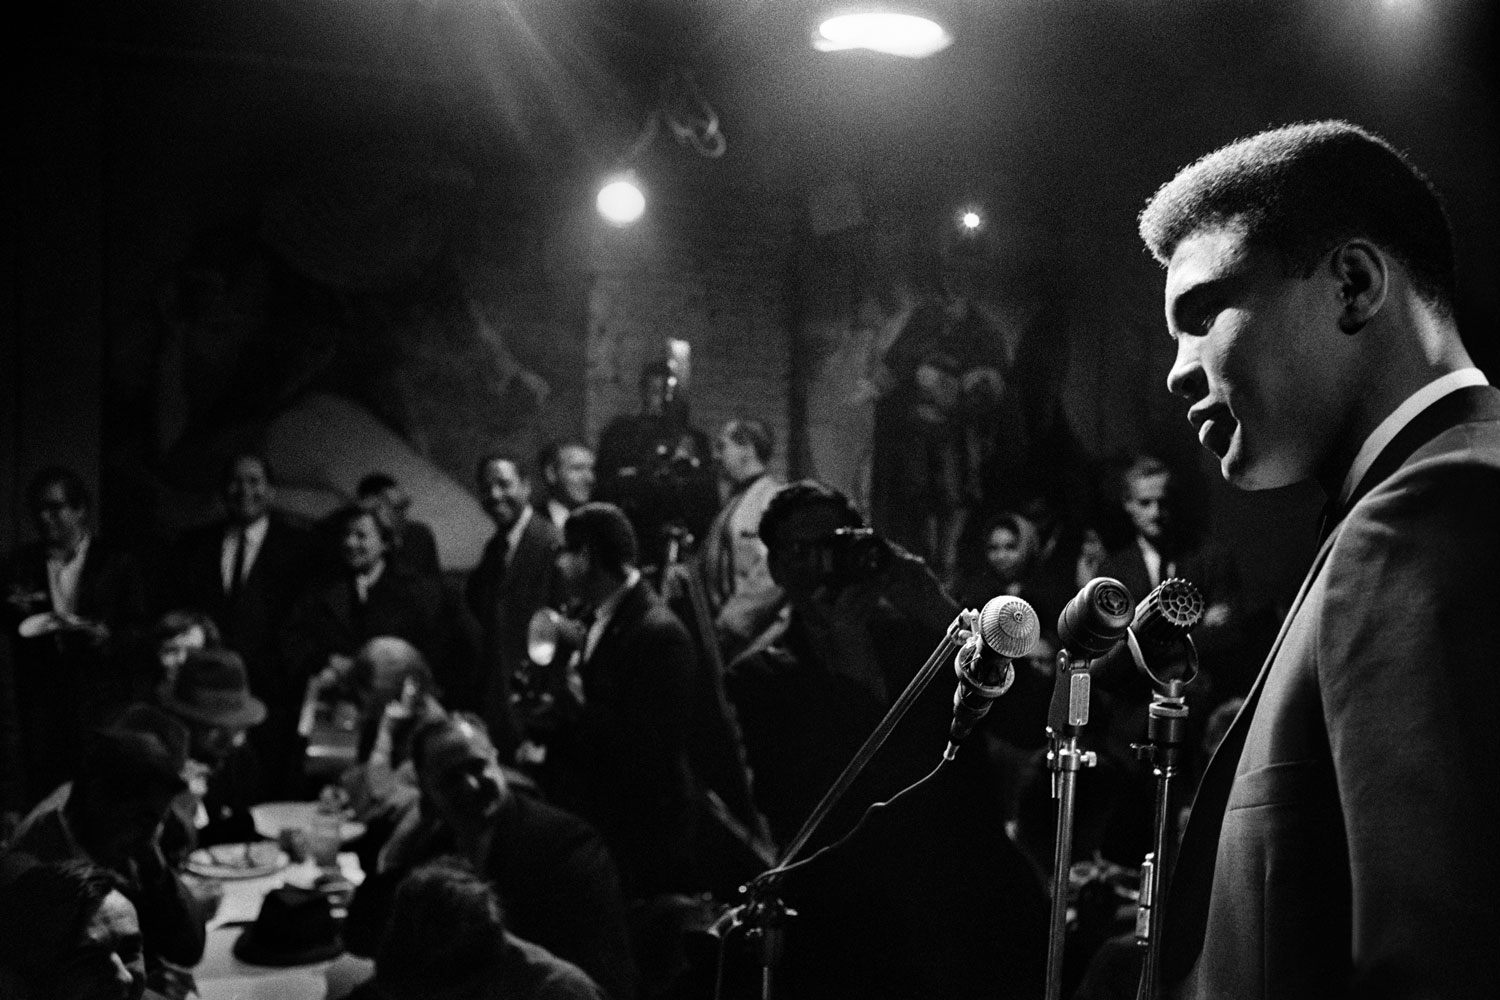 Muhammad Ali - then known as Cassius Clay - reading his poetry at Take Three, a bar in Lower Manhattan, New York, circa 1963.